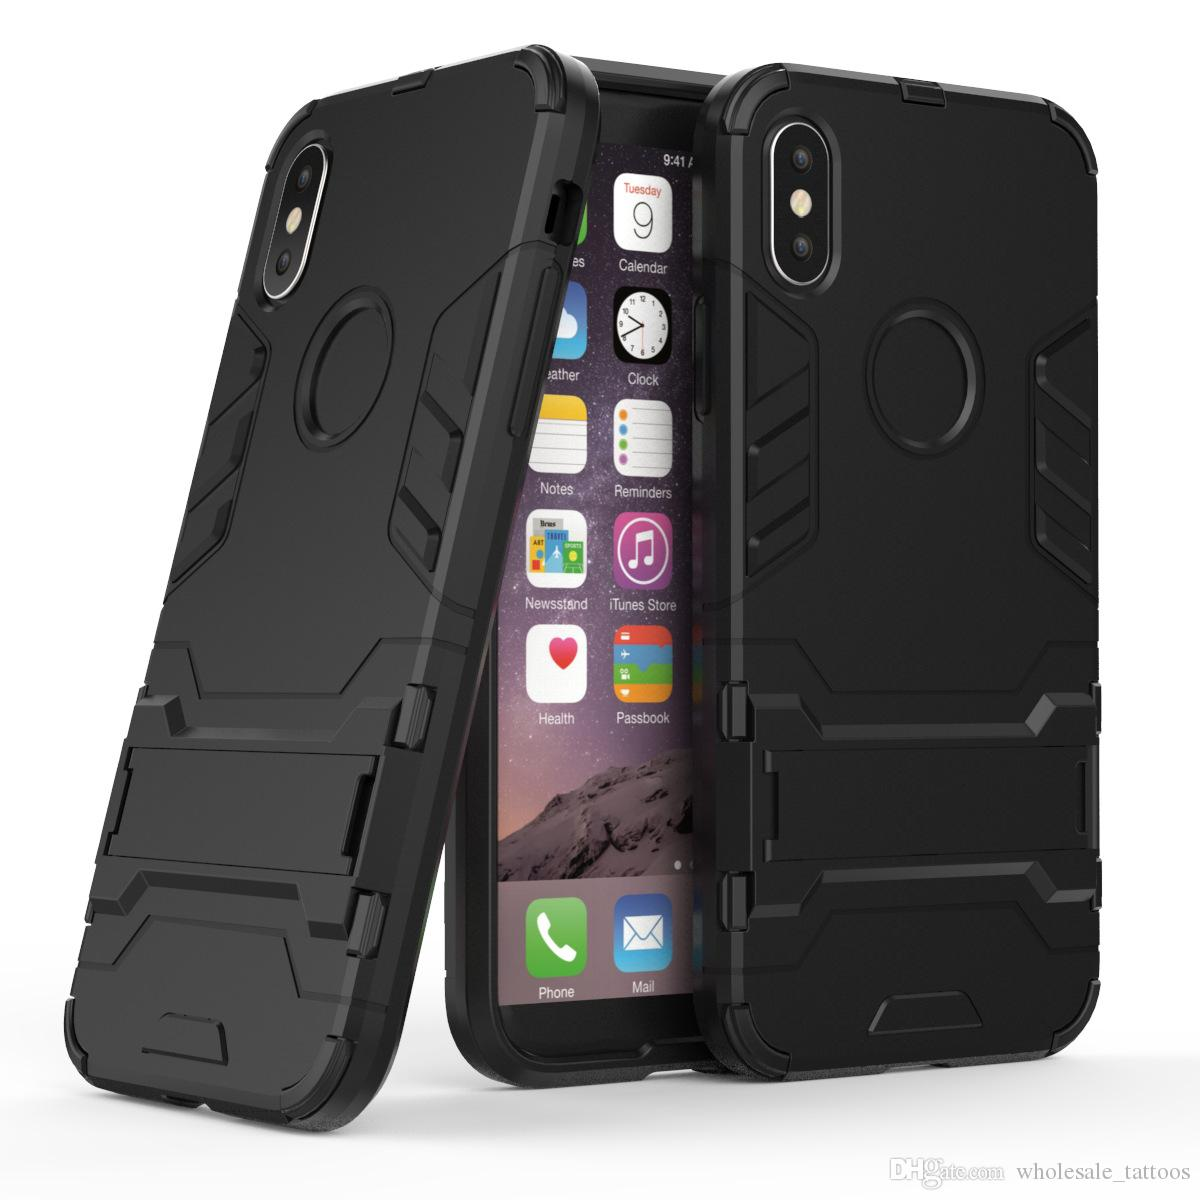 finest selection 8df6d d642d Iron Man Shockproof Armor Case For LG Aristo Stylo 2 V Fortune Phoenix 3  Rebel 2 Risio 2 Soft Silicone Hard PC Dual Cover with Stand Holder